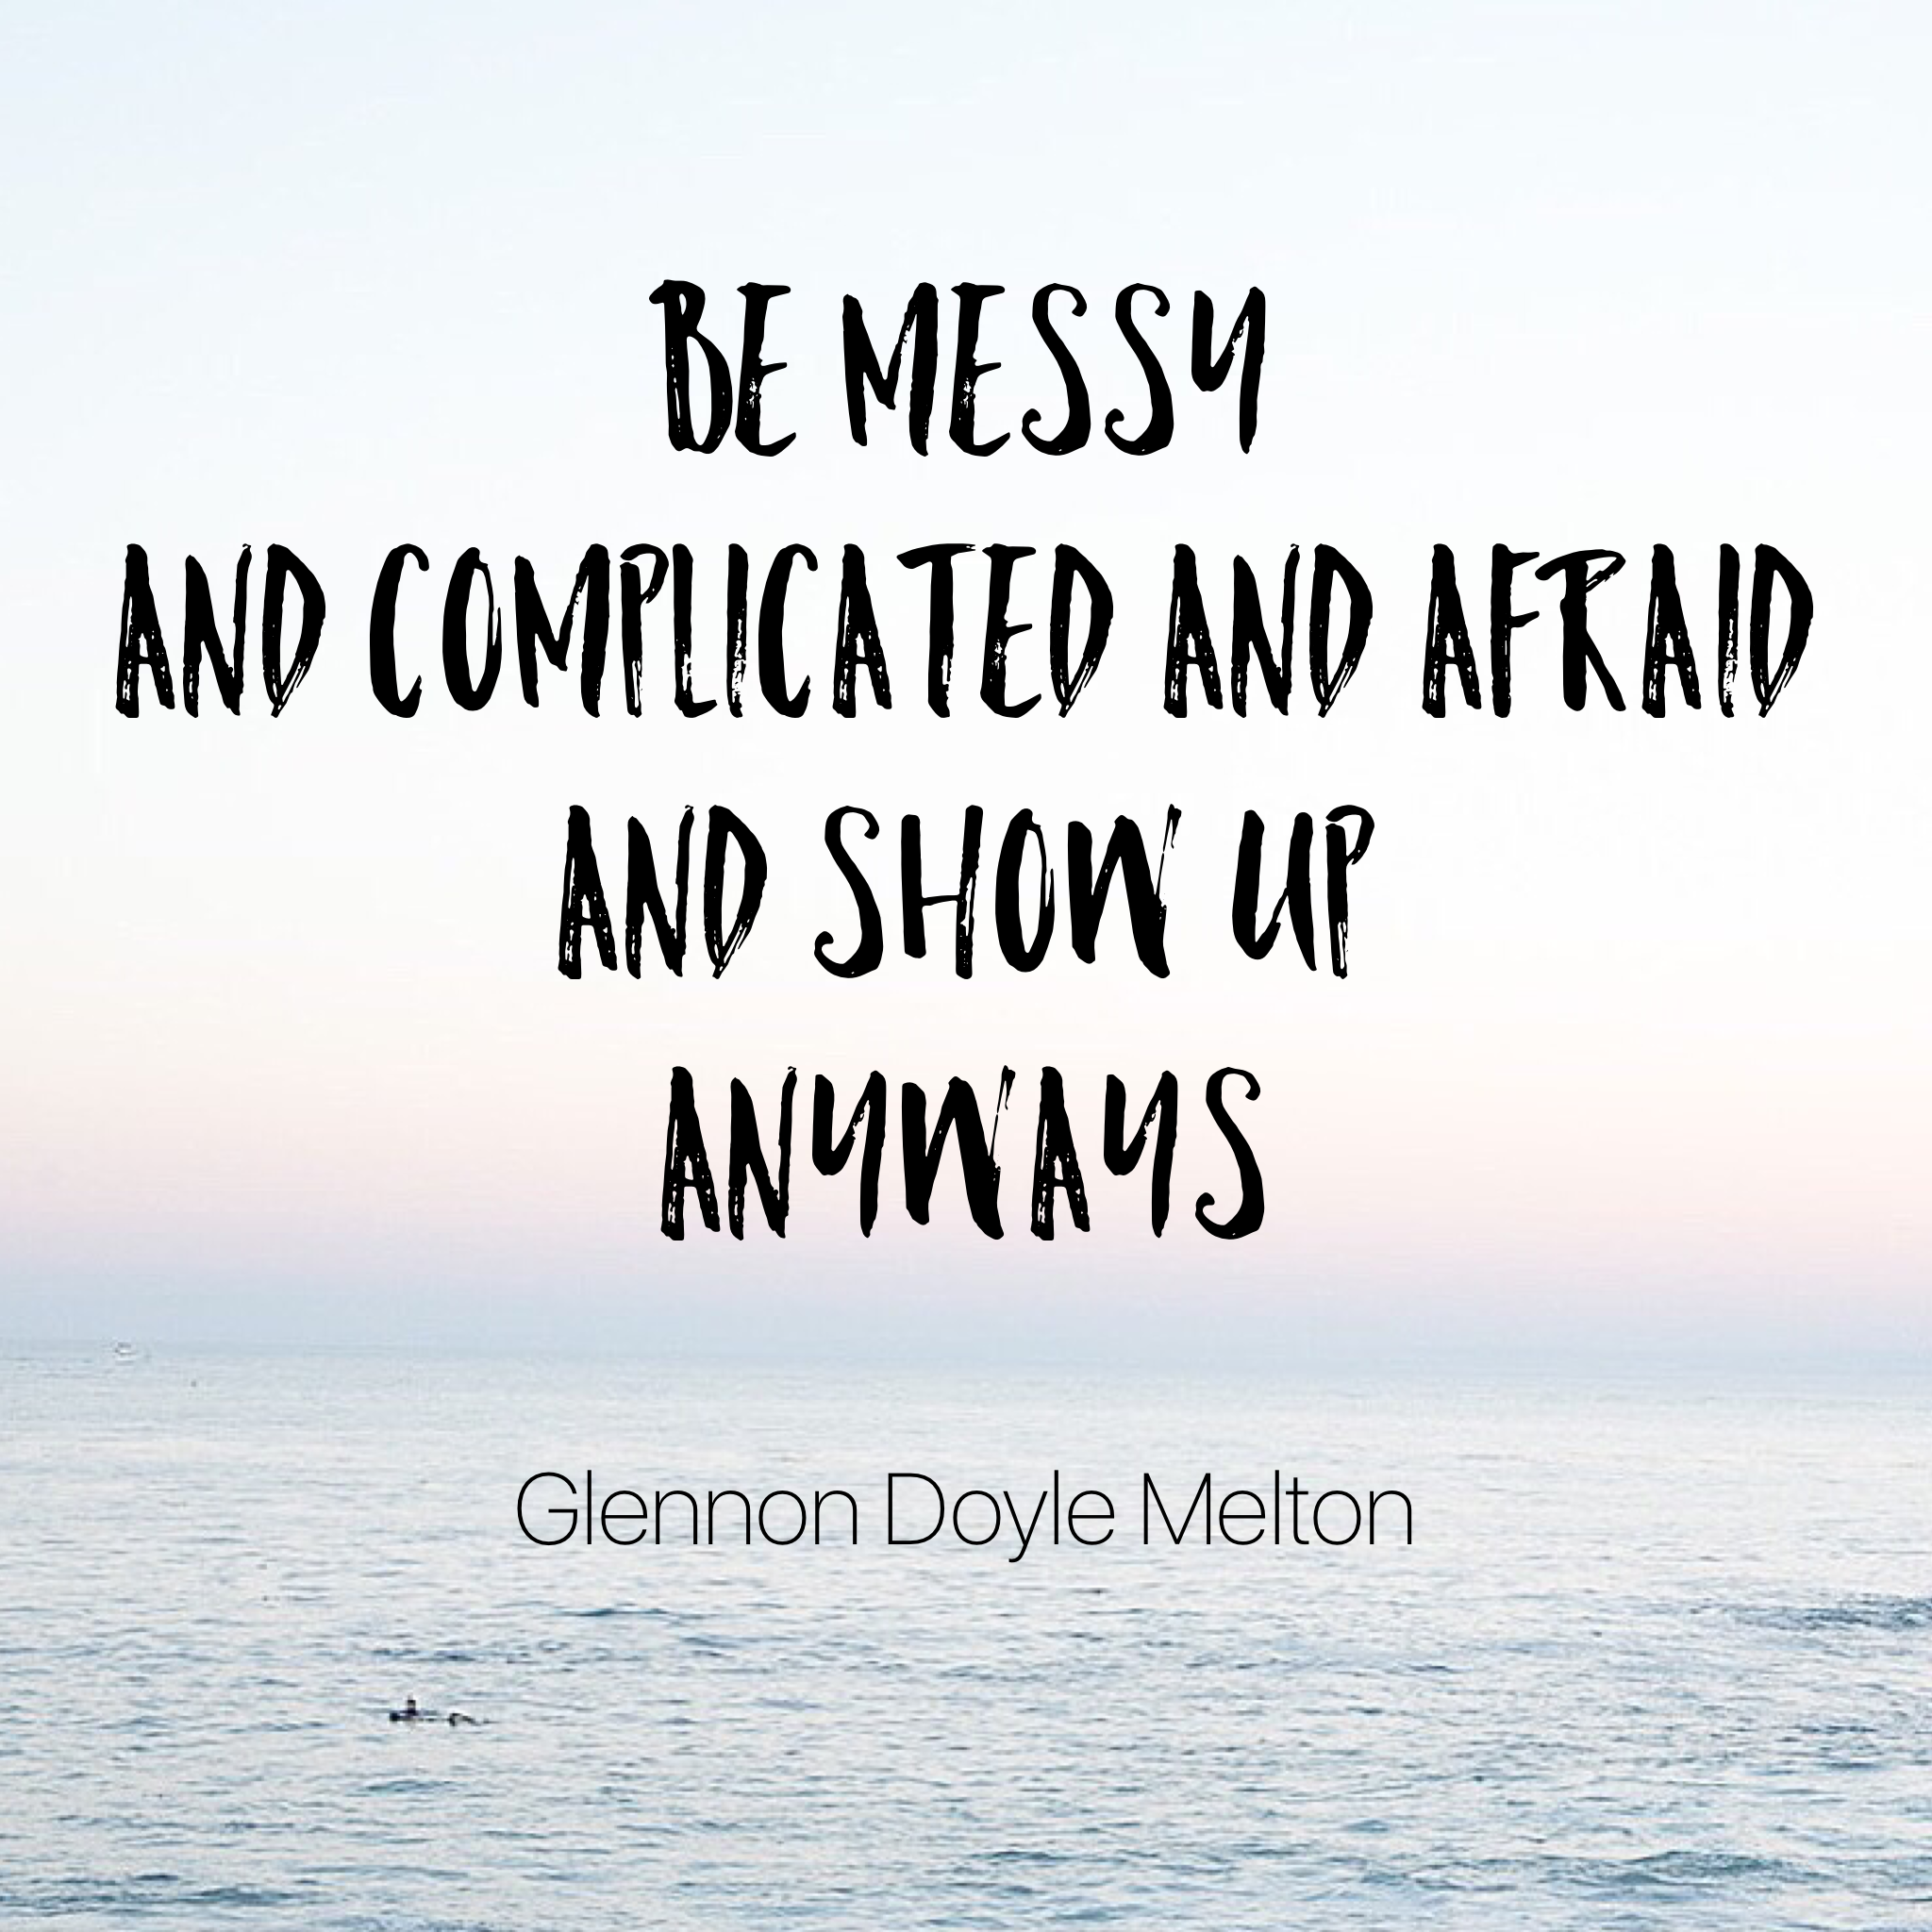 Be messy and complicated and afraid and show up anyways. - Glennon Doyle Melton - Happiness | Collective